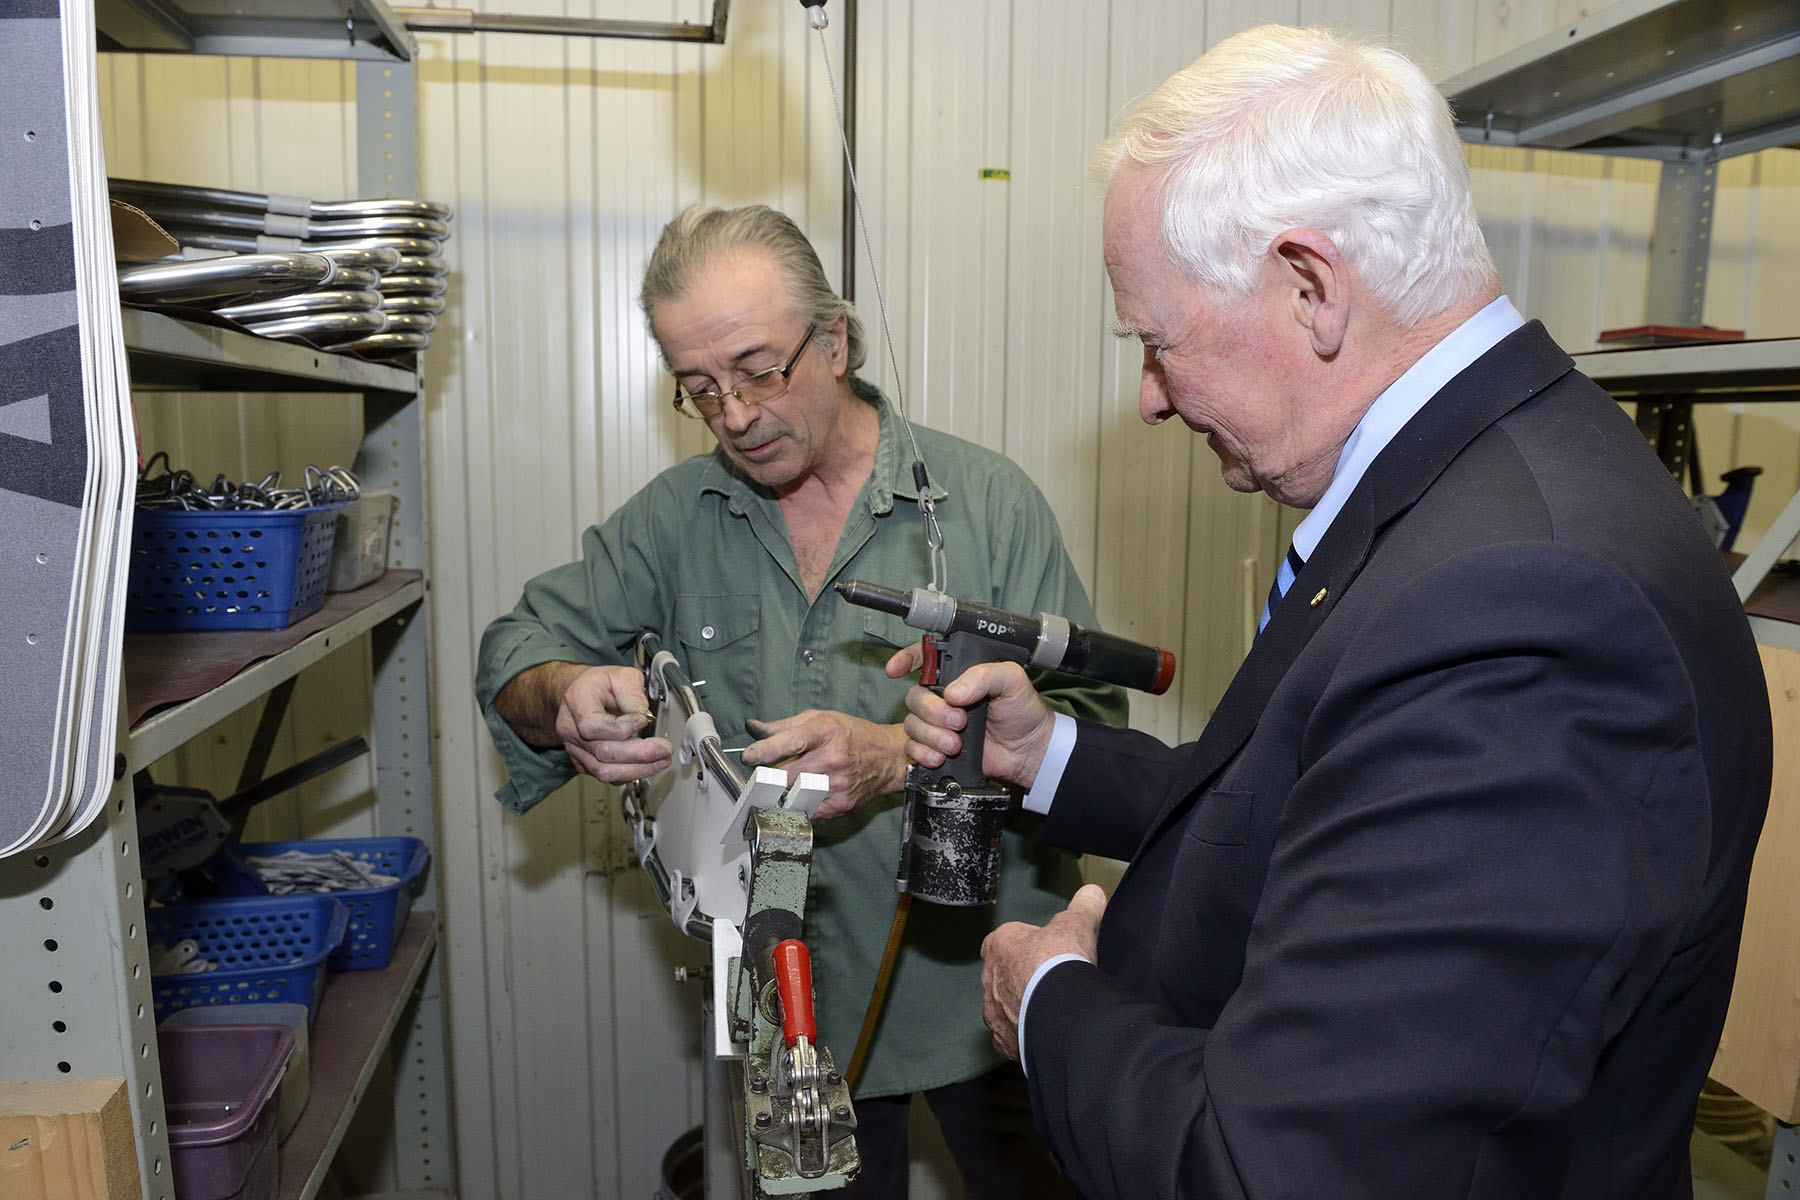 During the tour, His Excellency was invited to take part in the making of an aluminum snowshoe.